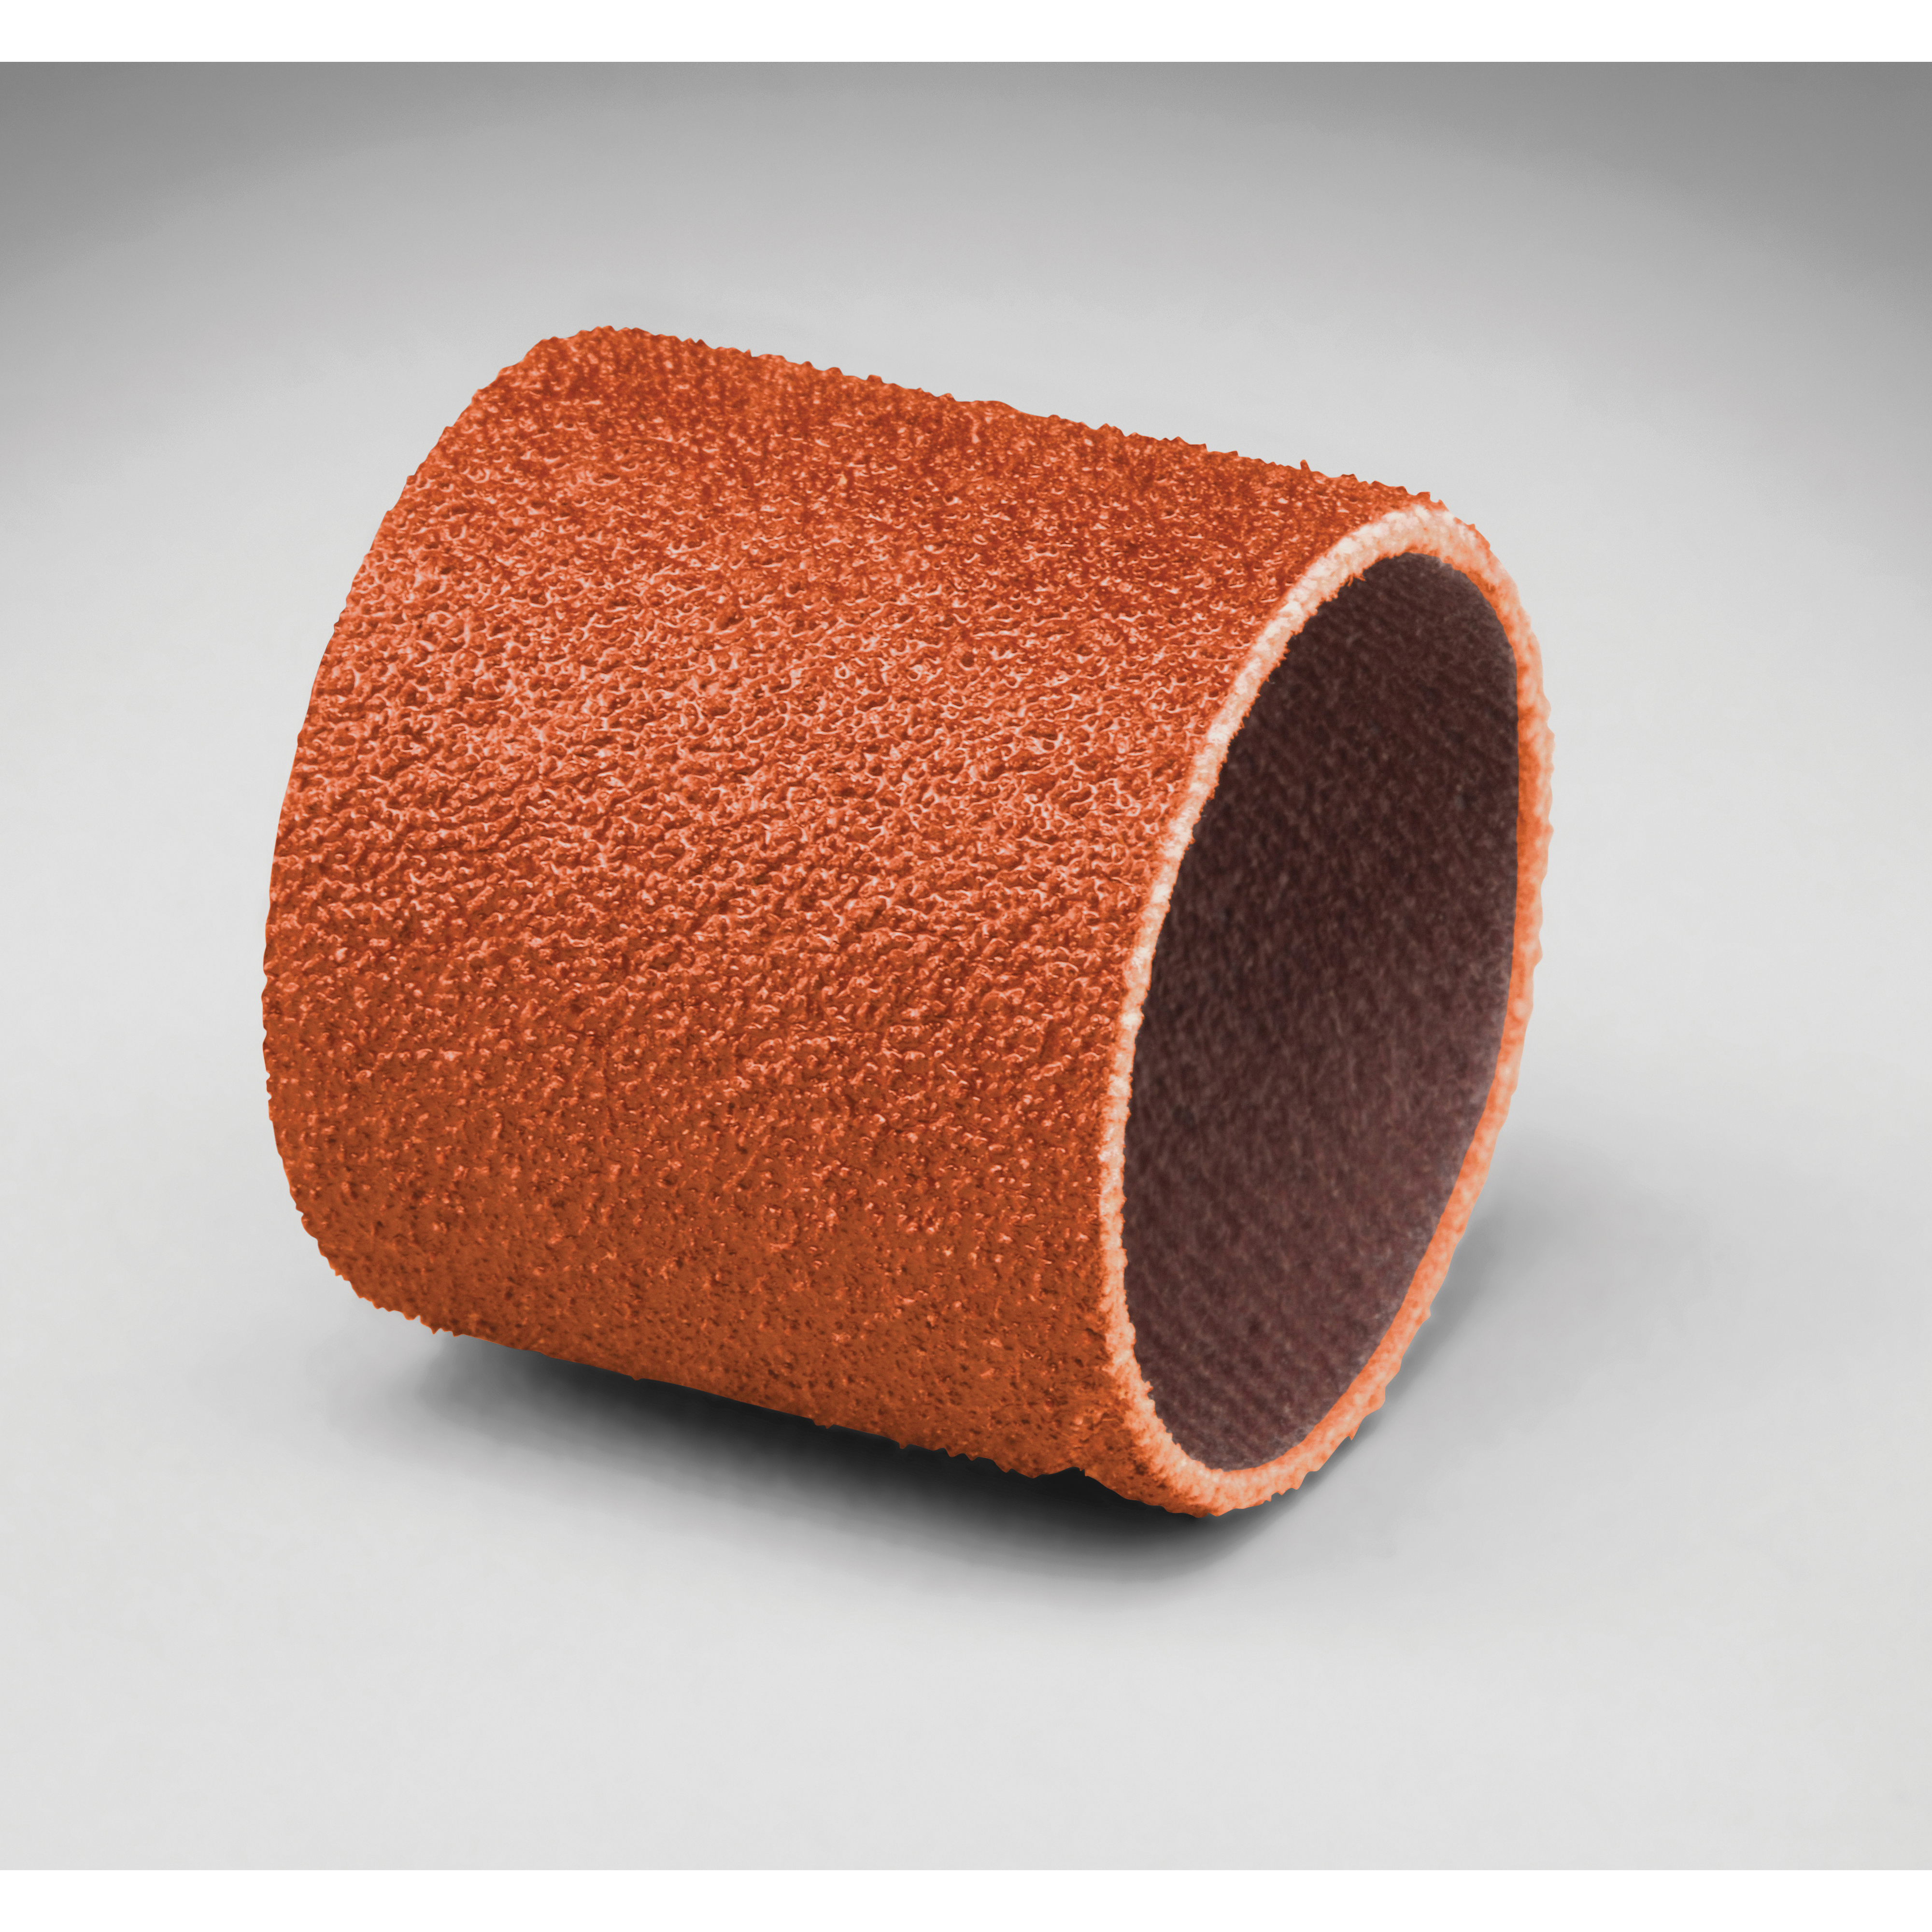 3M™ 051144-80782 747D Coated Spiral Band, 1 in Dia x 1 in L Band, P120 Grit, Fine Grade, Ceramic Abrasive